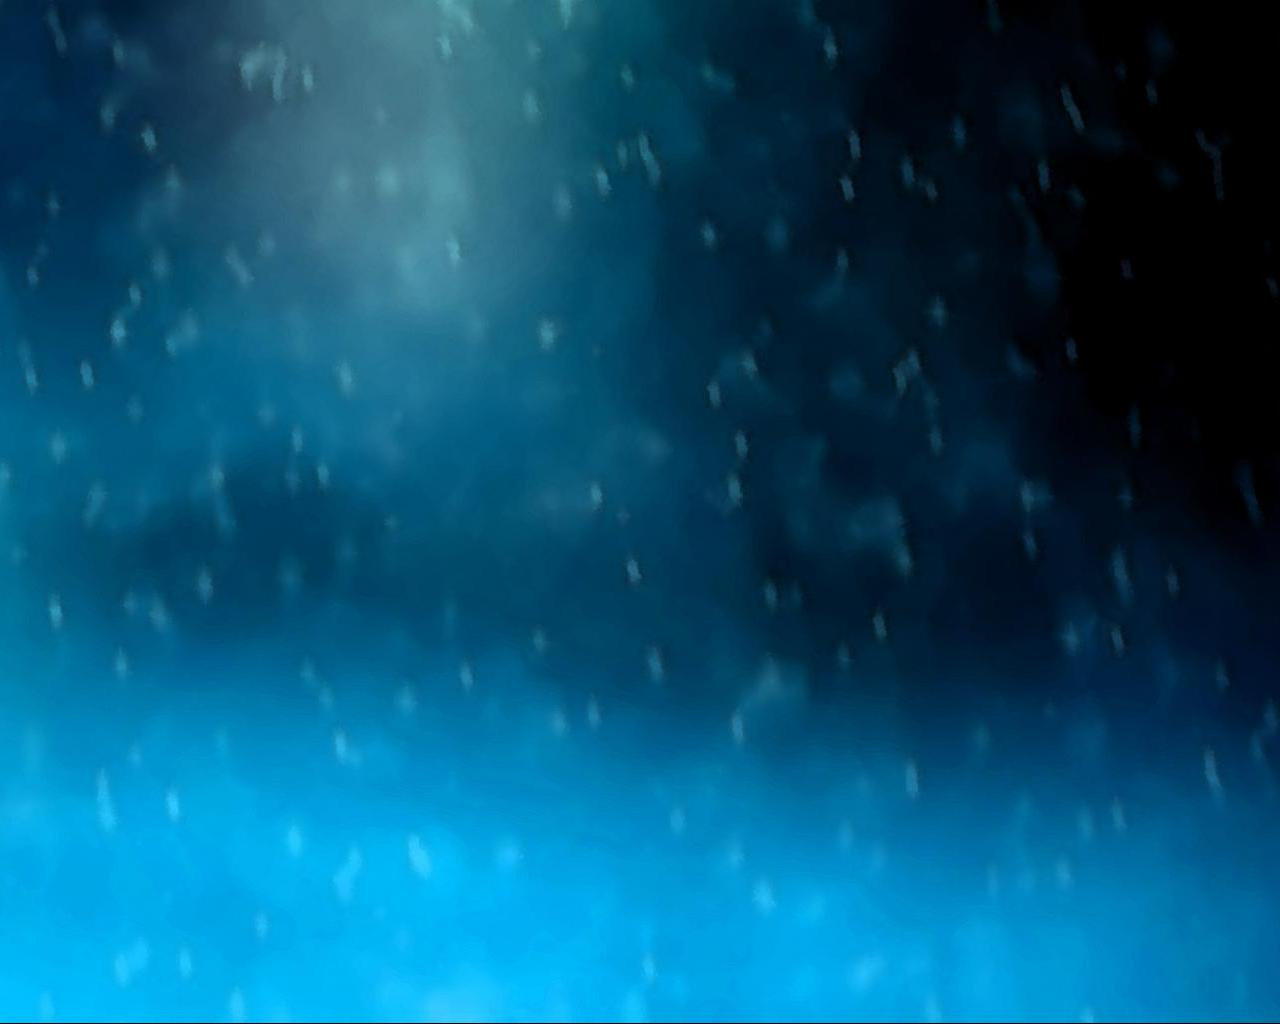 Animated Rain Gif Background Blue abstract wallpaper 1280x1024